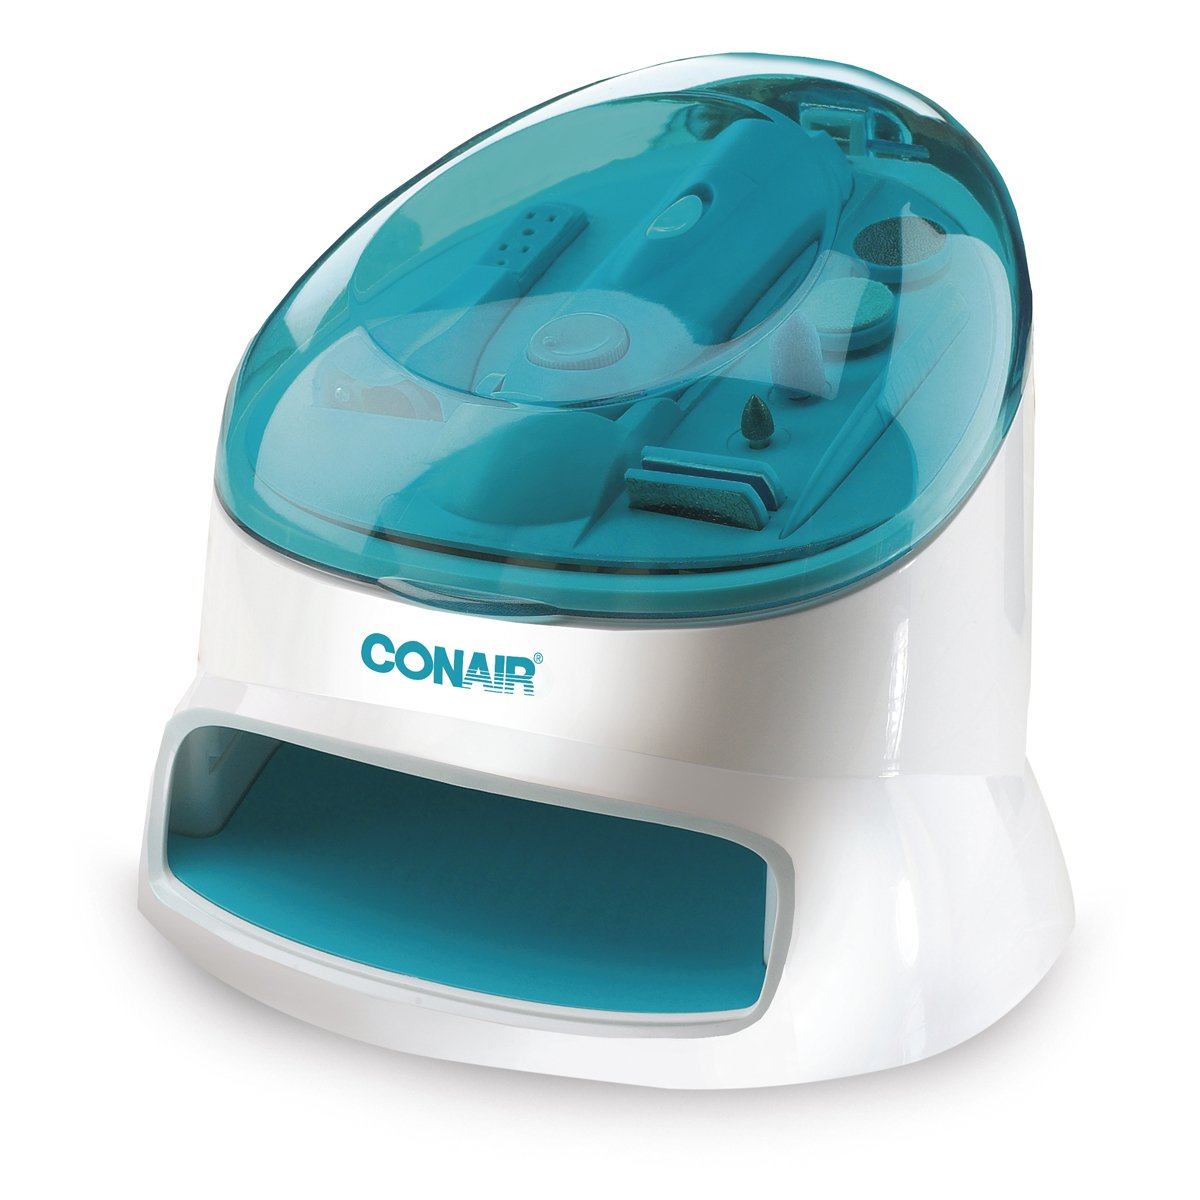 Conair The Complete Nail Care Center, White Blue 1-Count